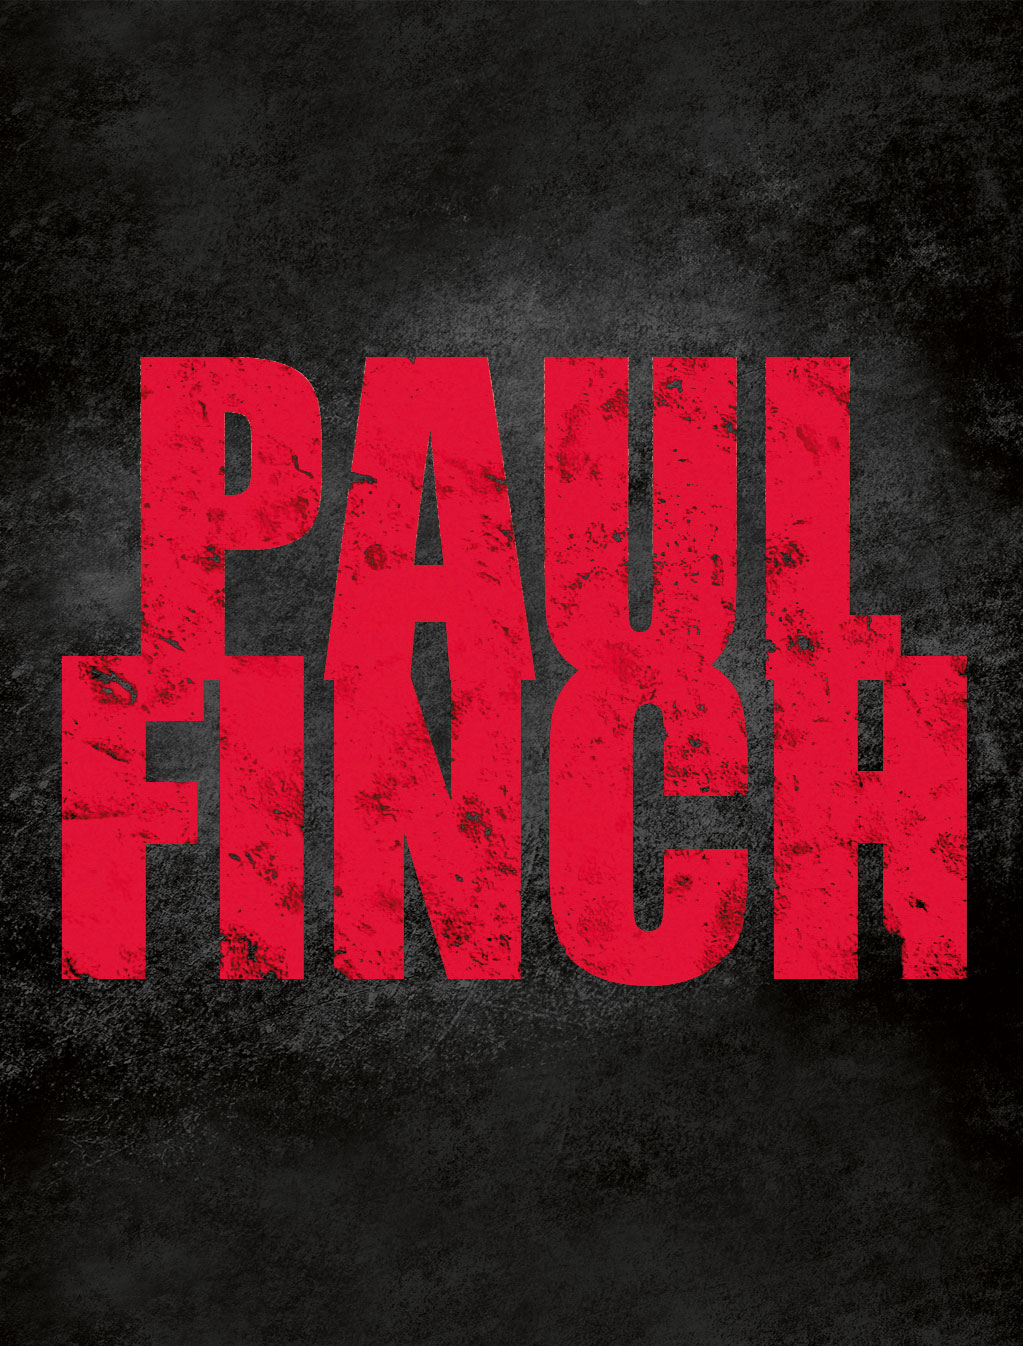 Paul Finch - Themenspecial